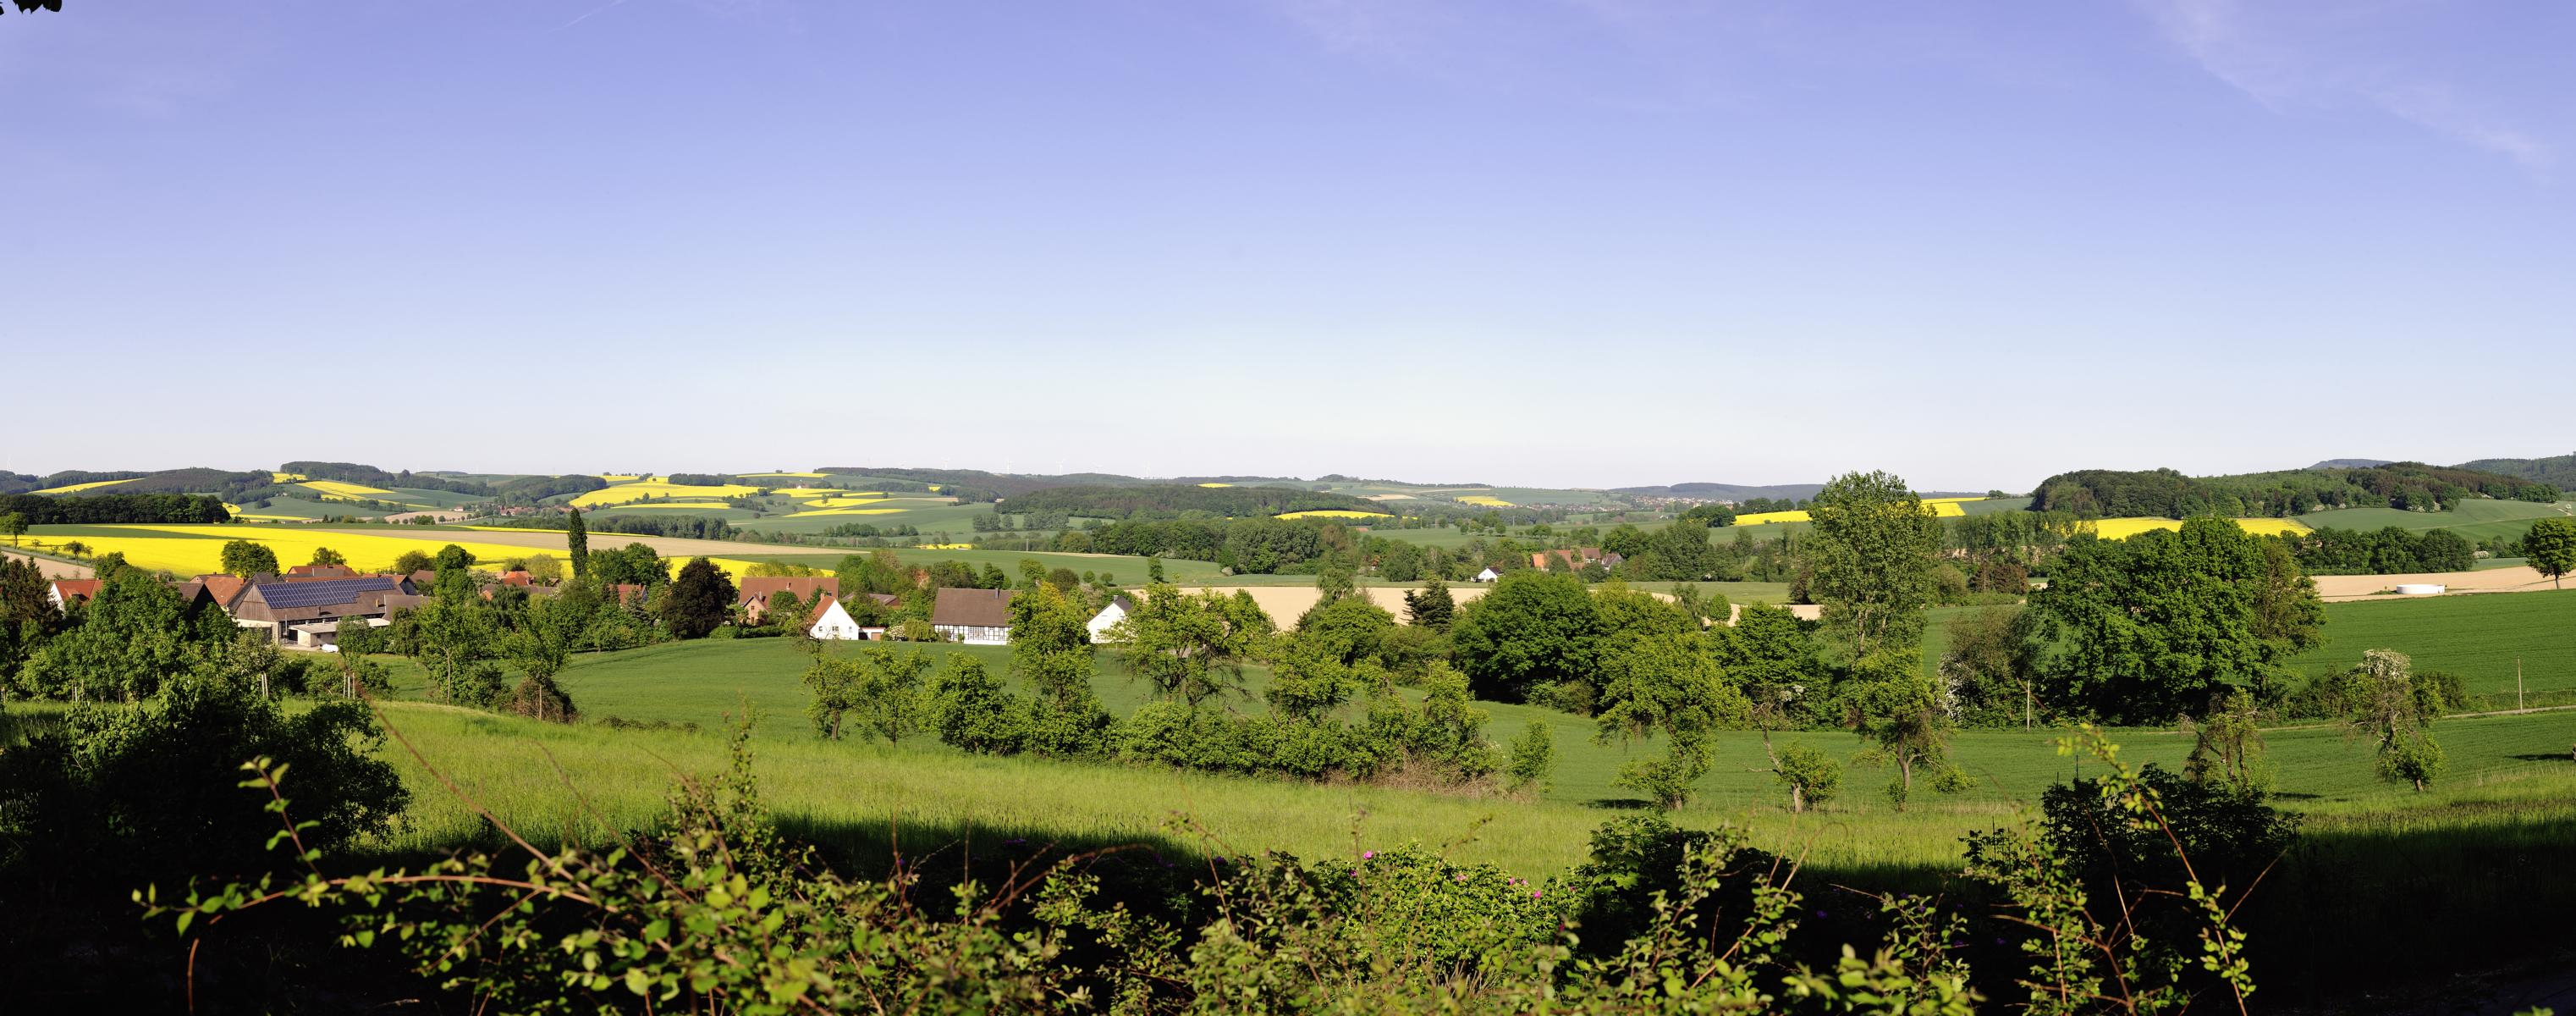 Barntrup_Sommersell_Panorama